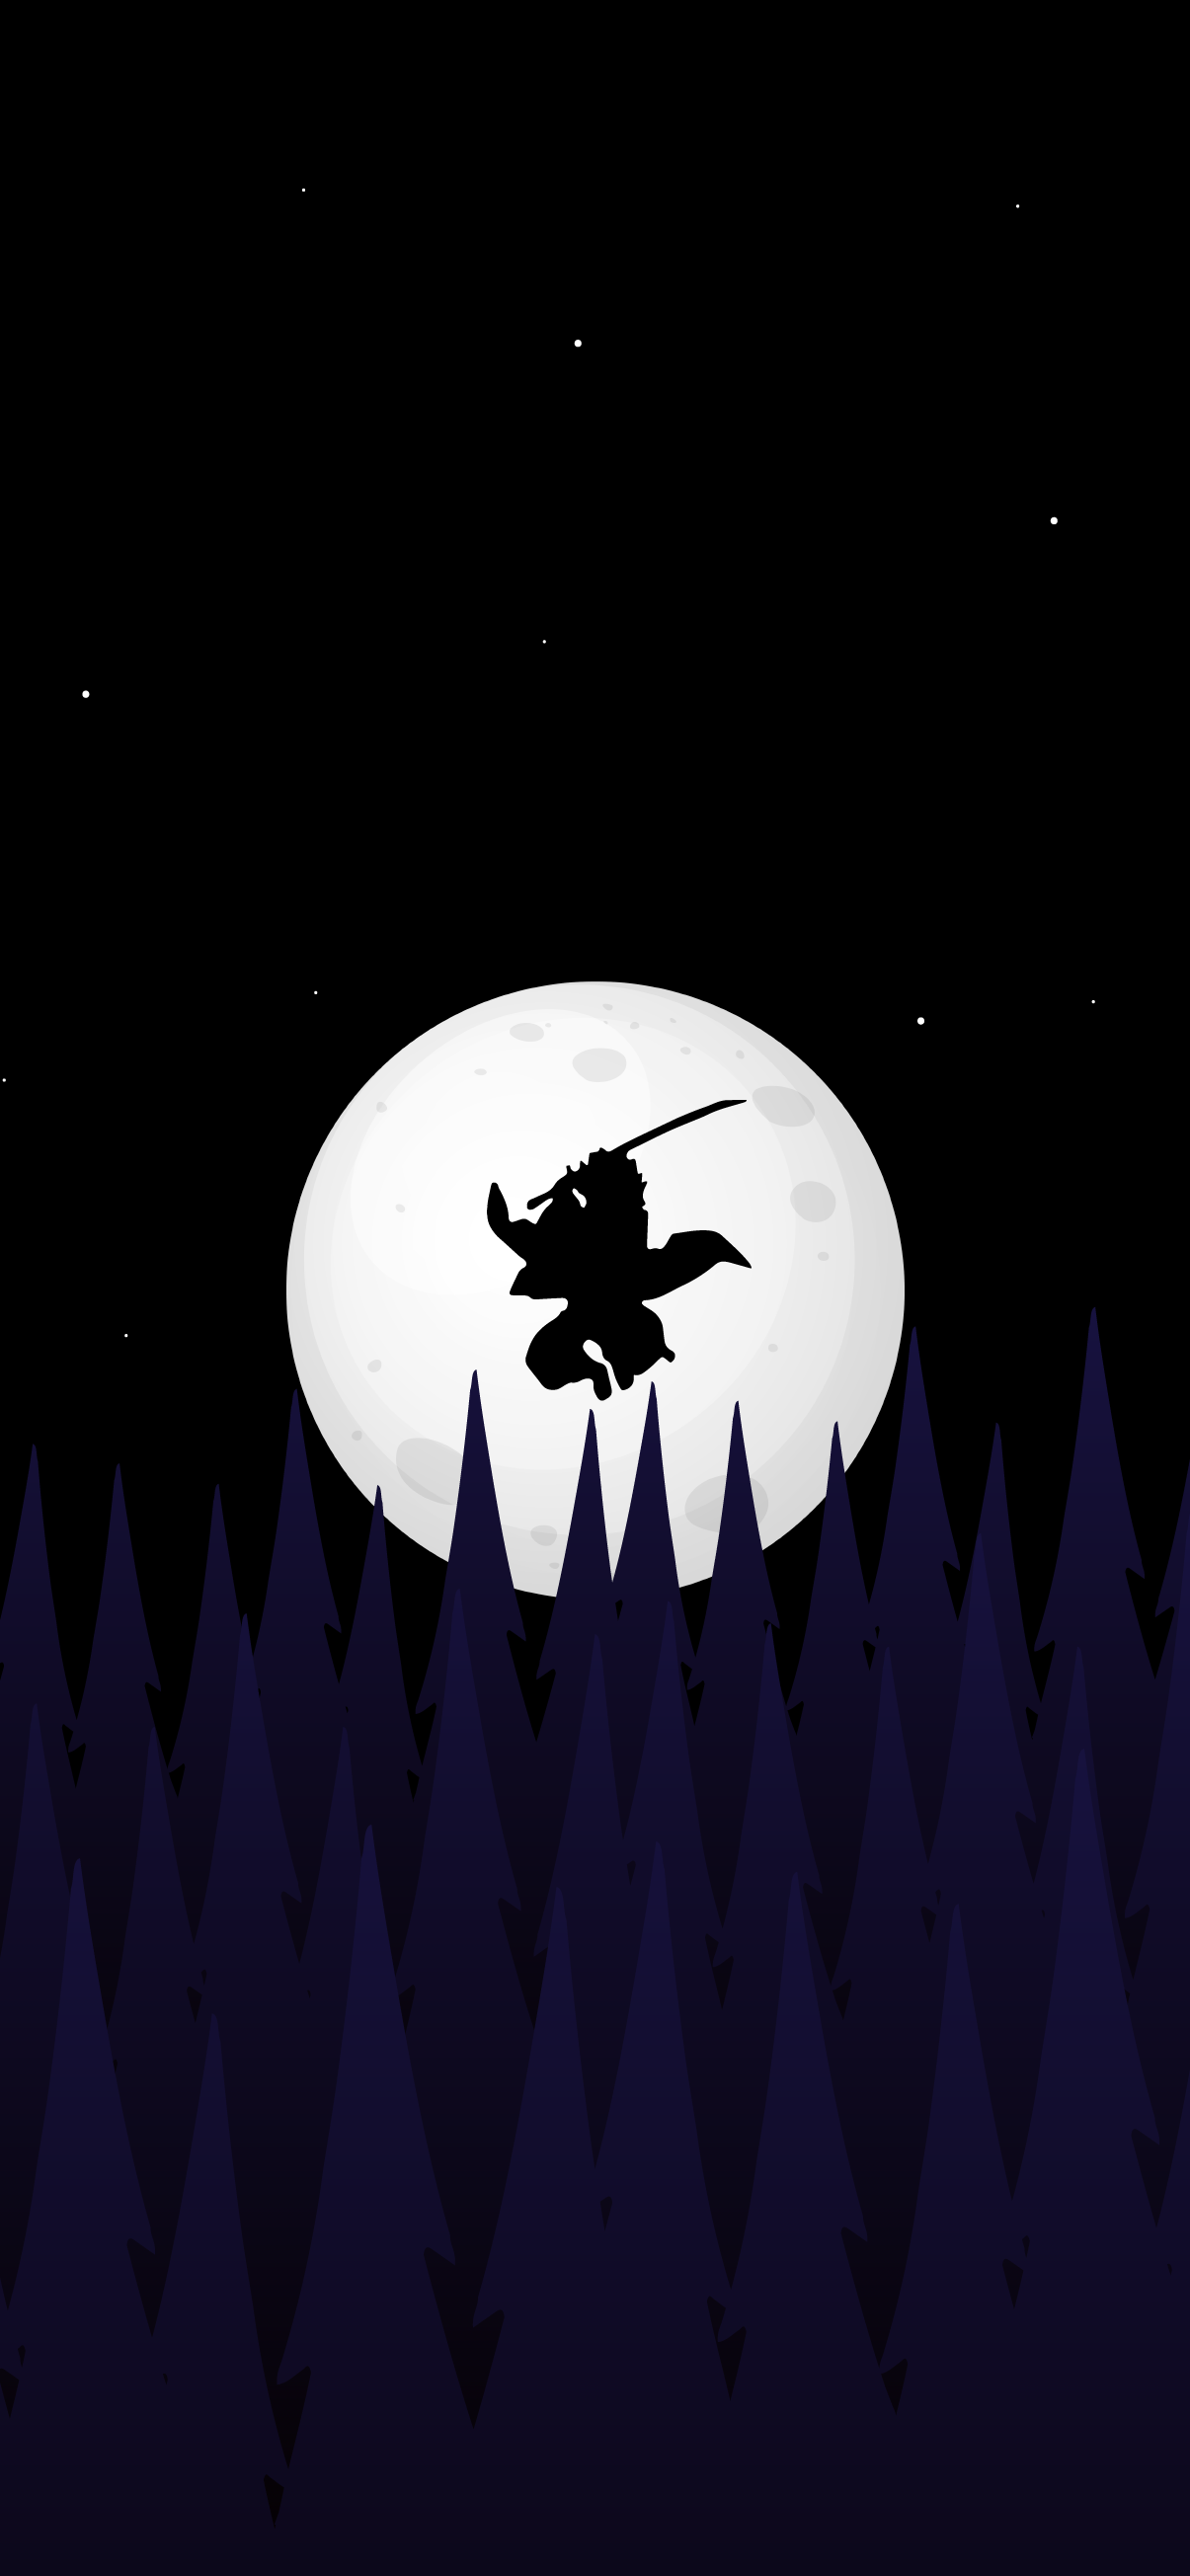 demon slayer anime wallpaper 4k tanjiro kamado silhouette forest night full moon